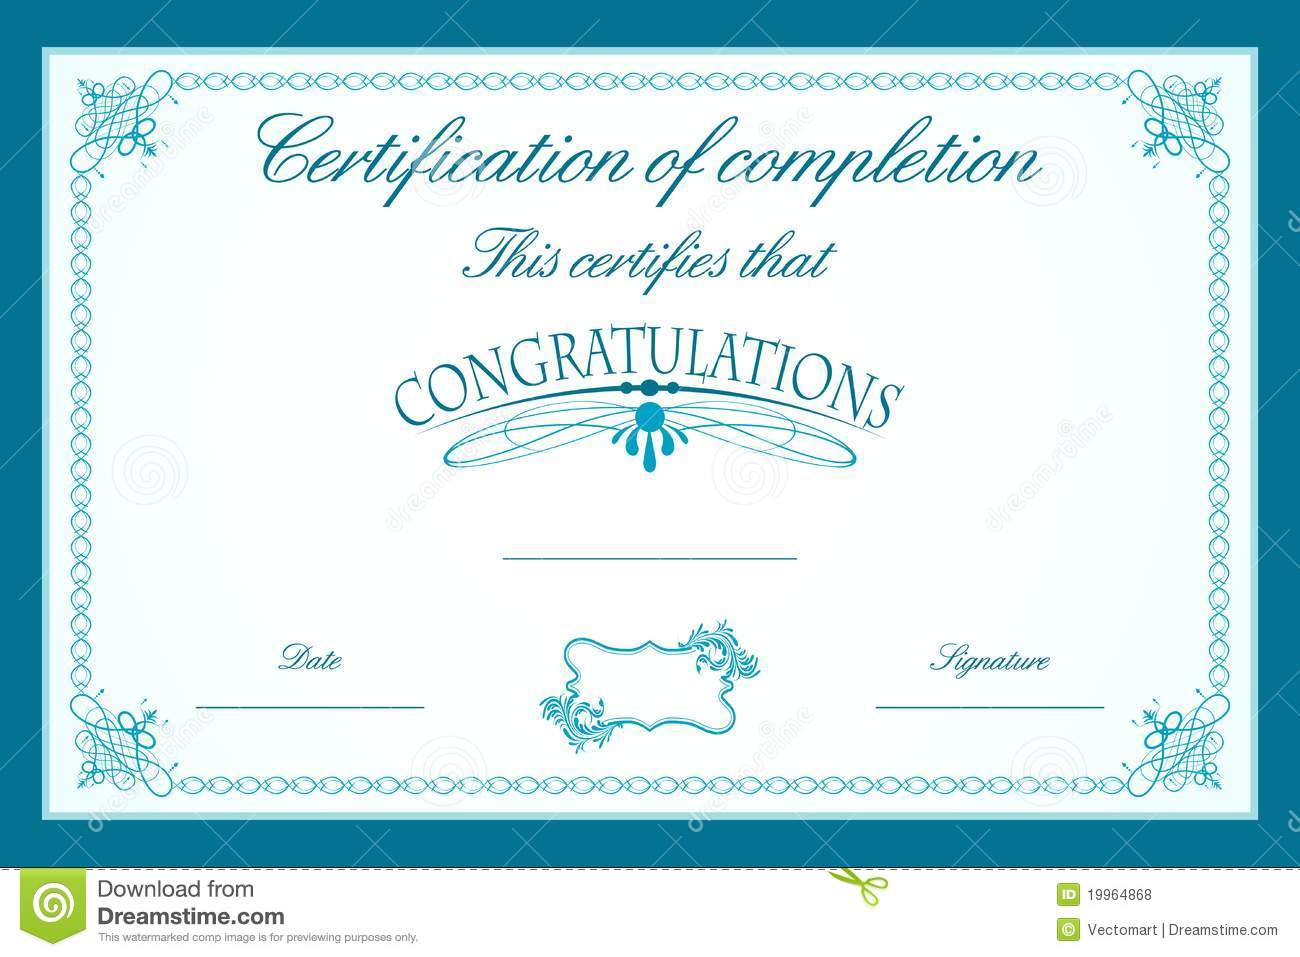 Template of a certificate image collections templates example template of a certificate gallery templates example free download template of a certificate image collections templates yadclub Gallery